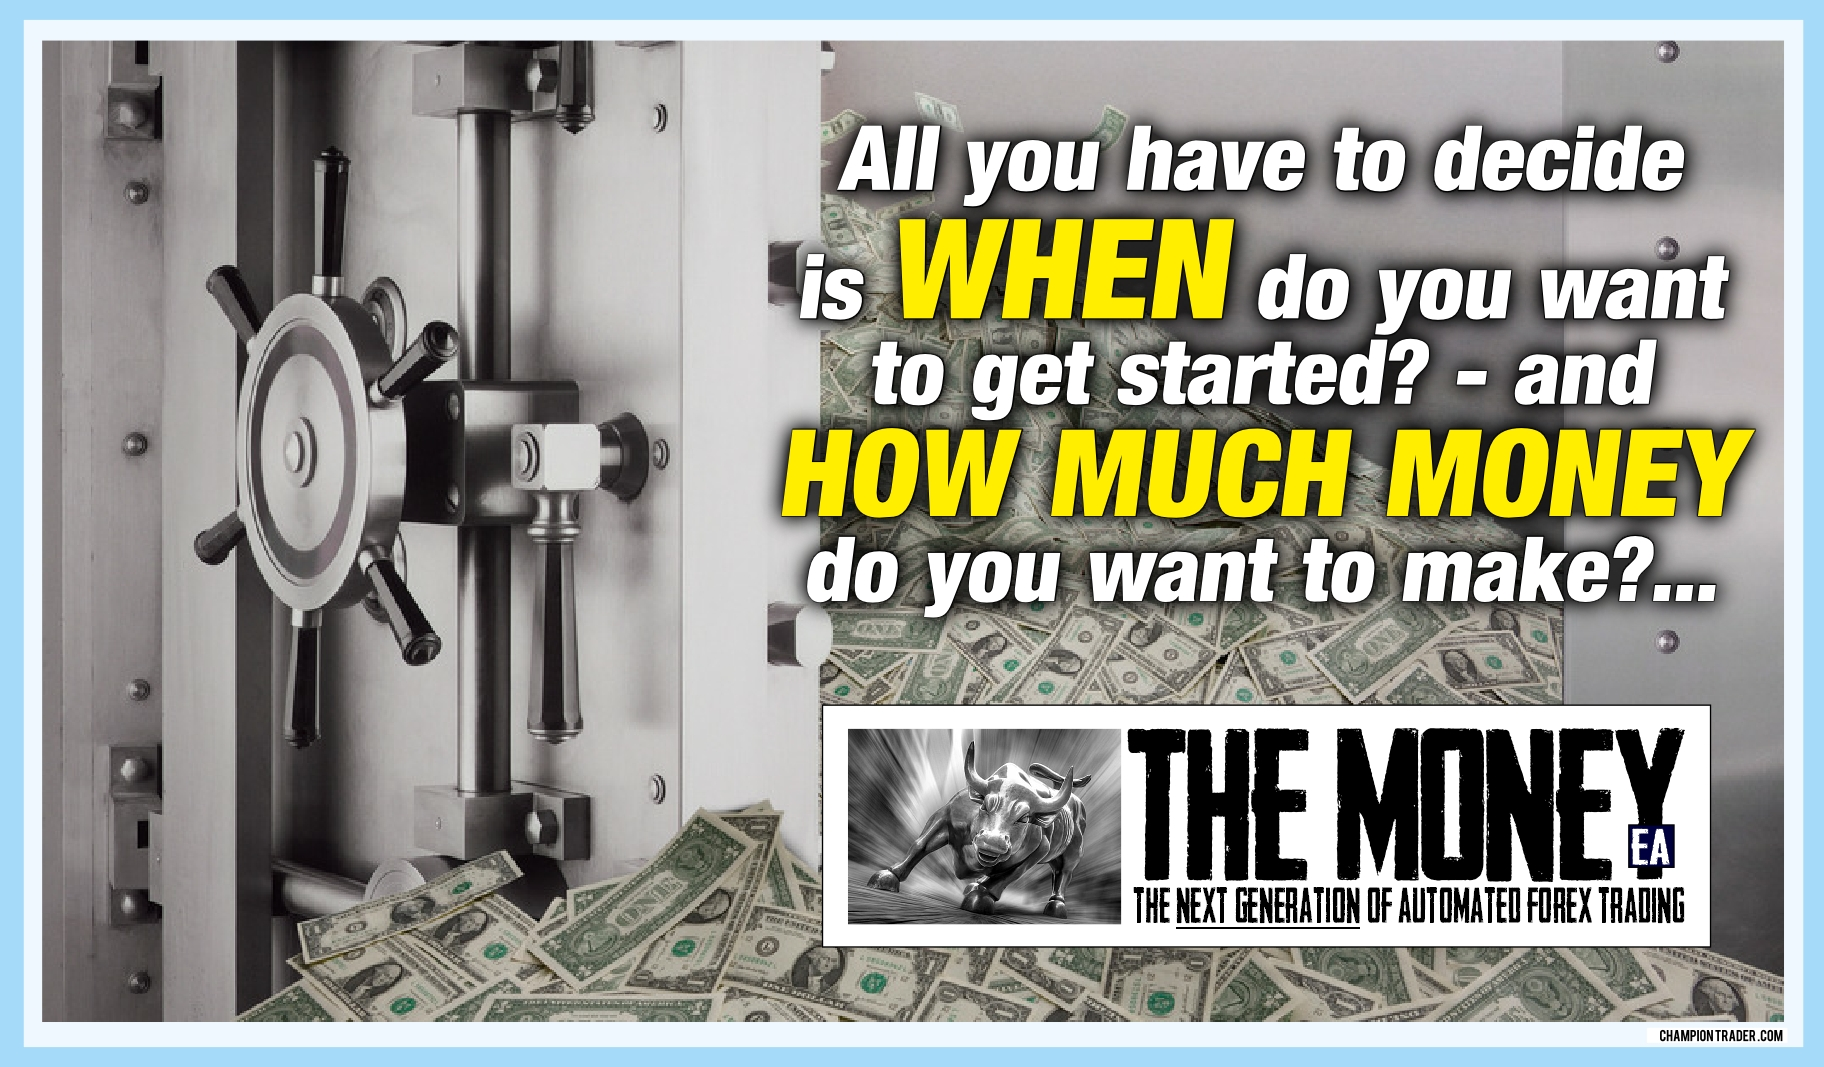 how much money do you want to make - The Money EA forex expert advisor live the life you've always dreamed of